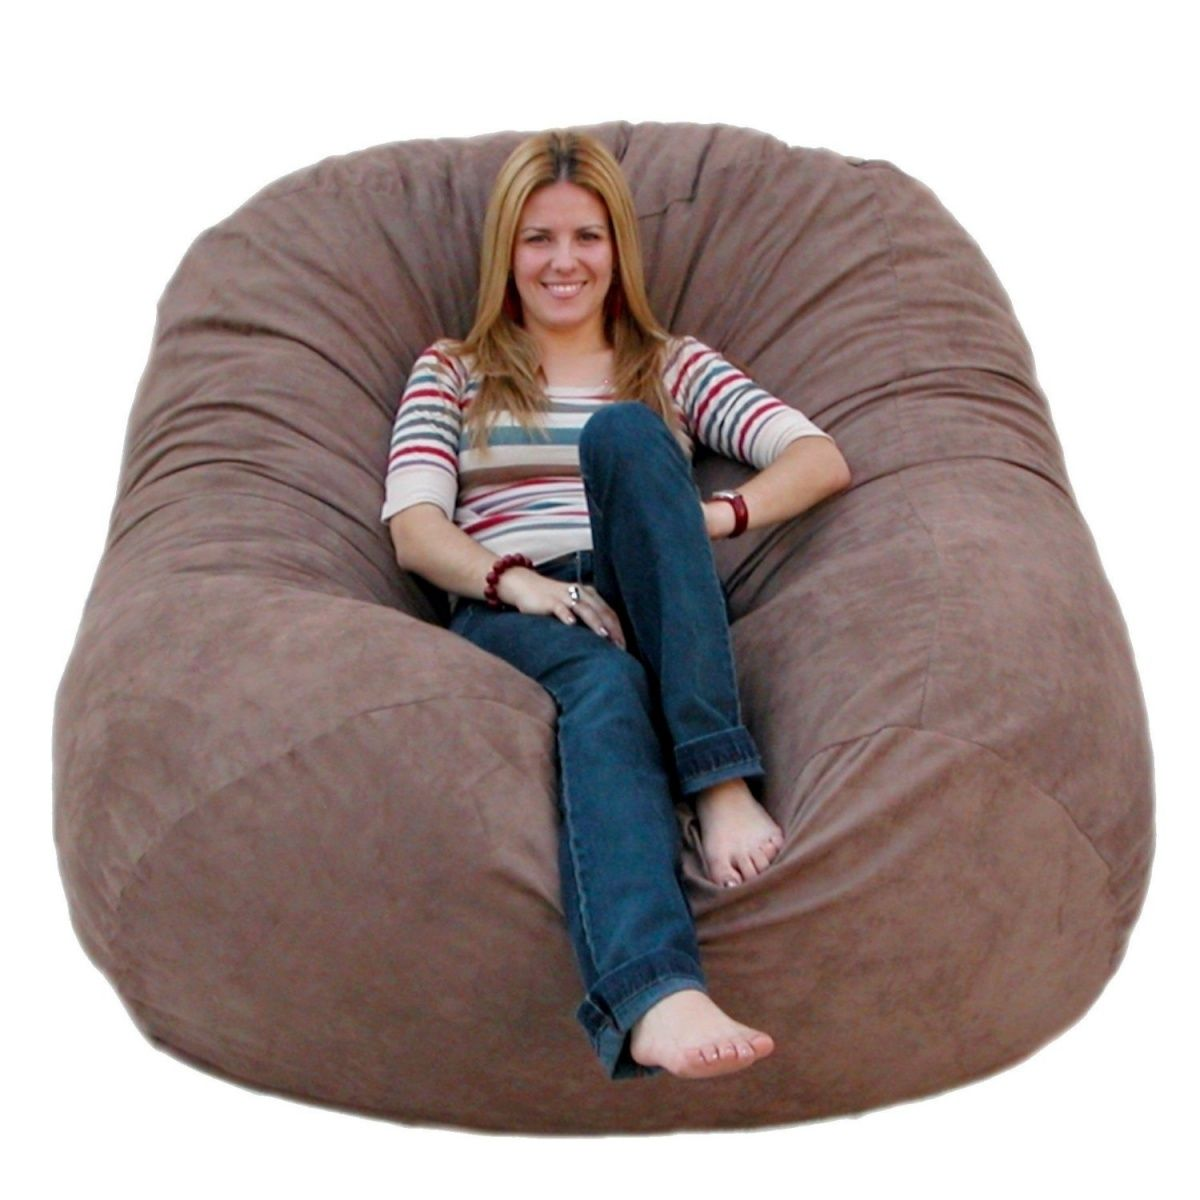 Perfect You Can Now Get The Classy, Foam Filled Bean Bag Chairs Youu0027ve Been